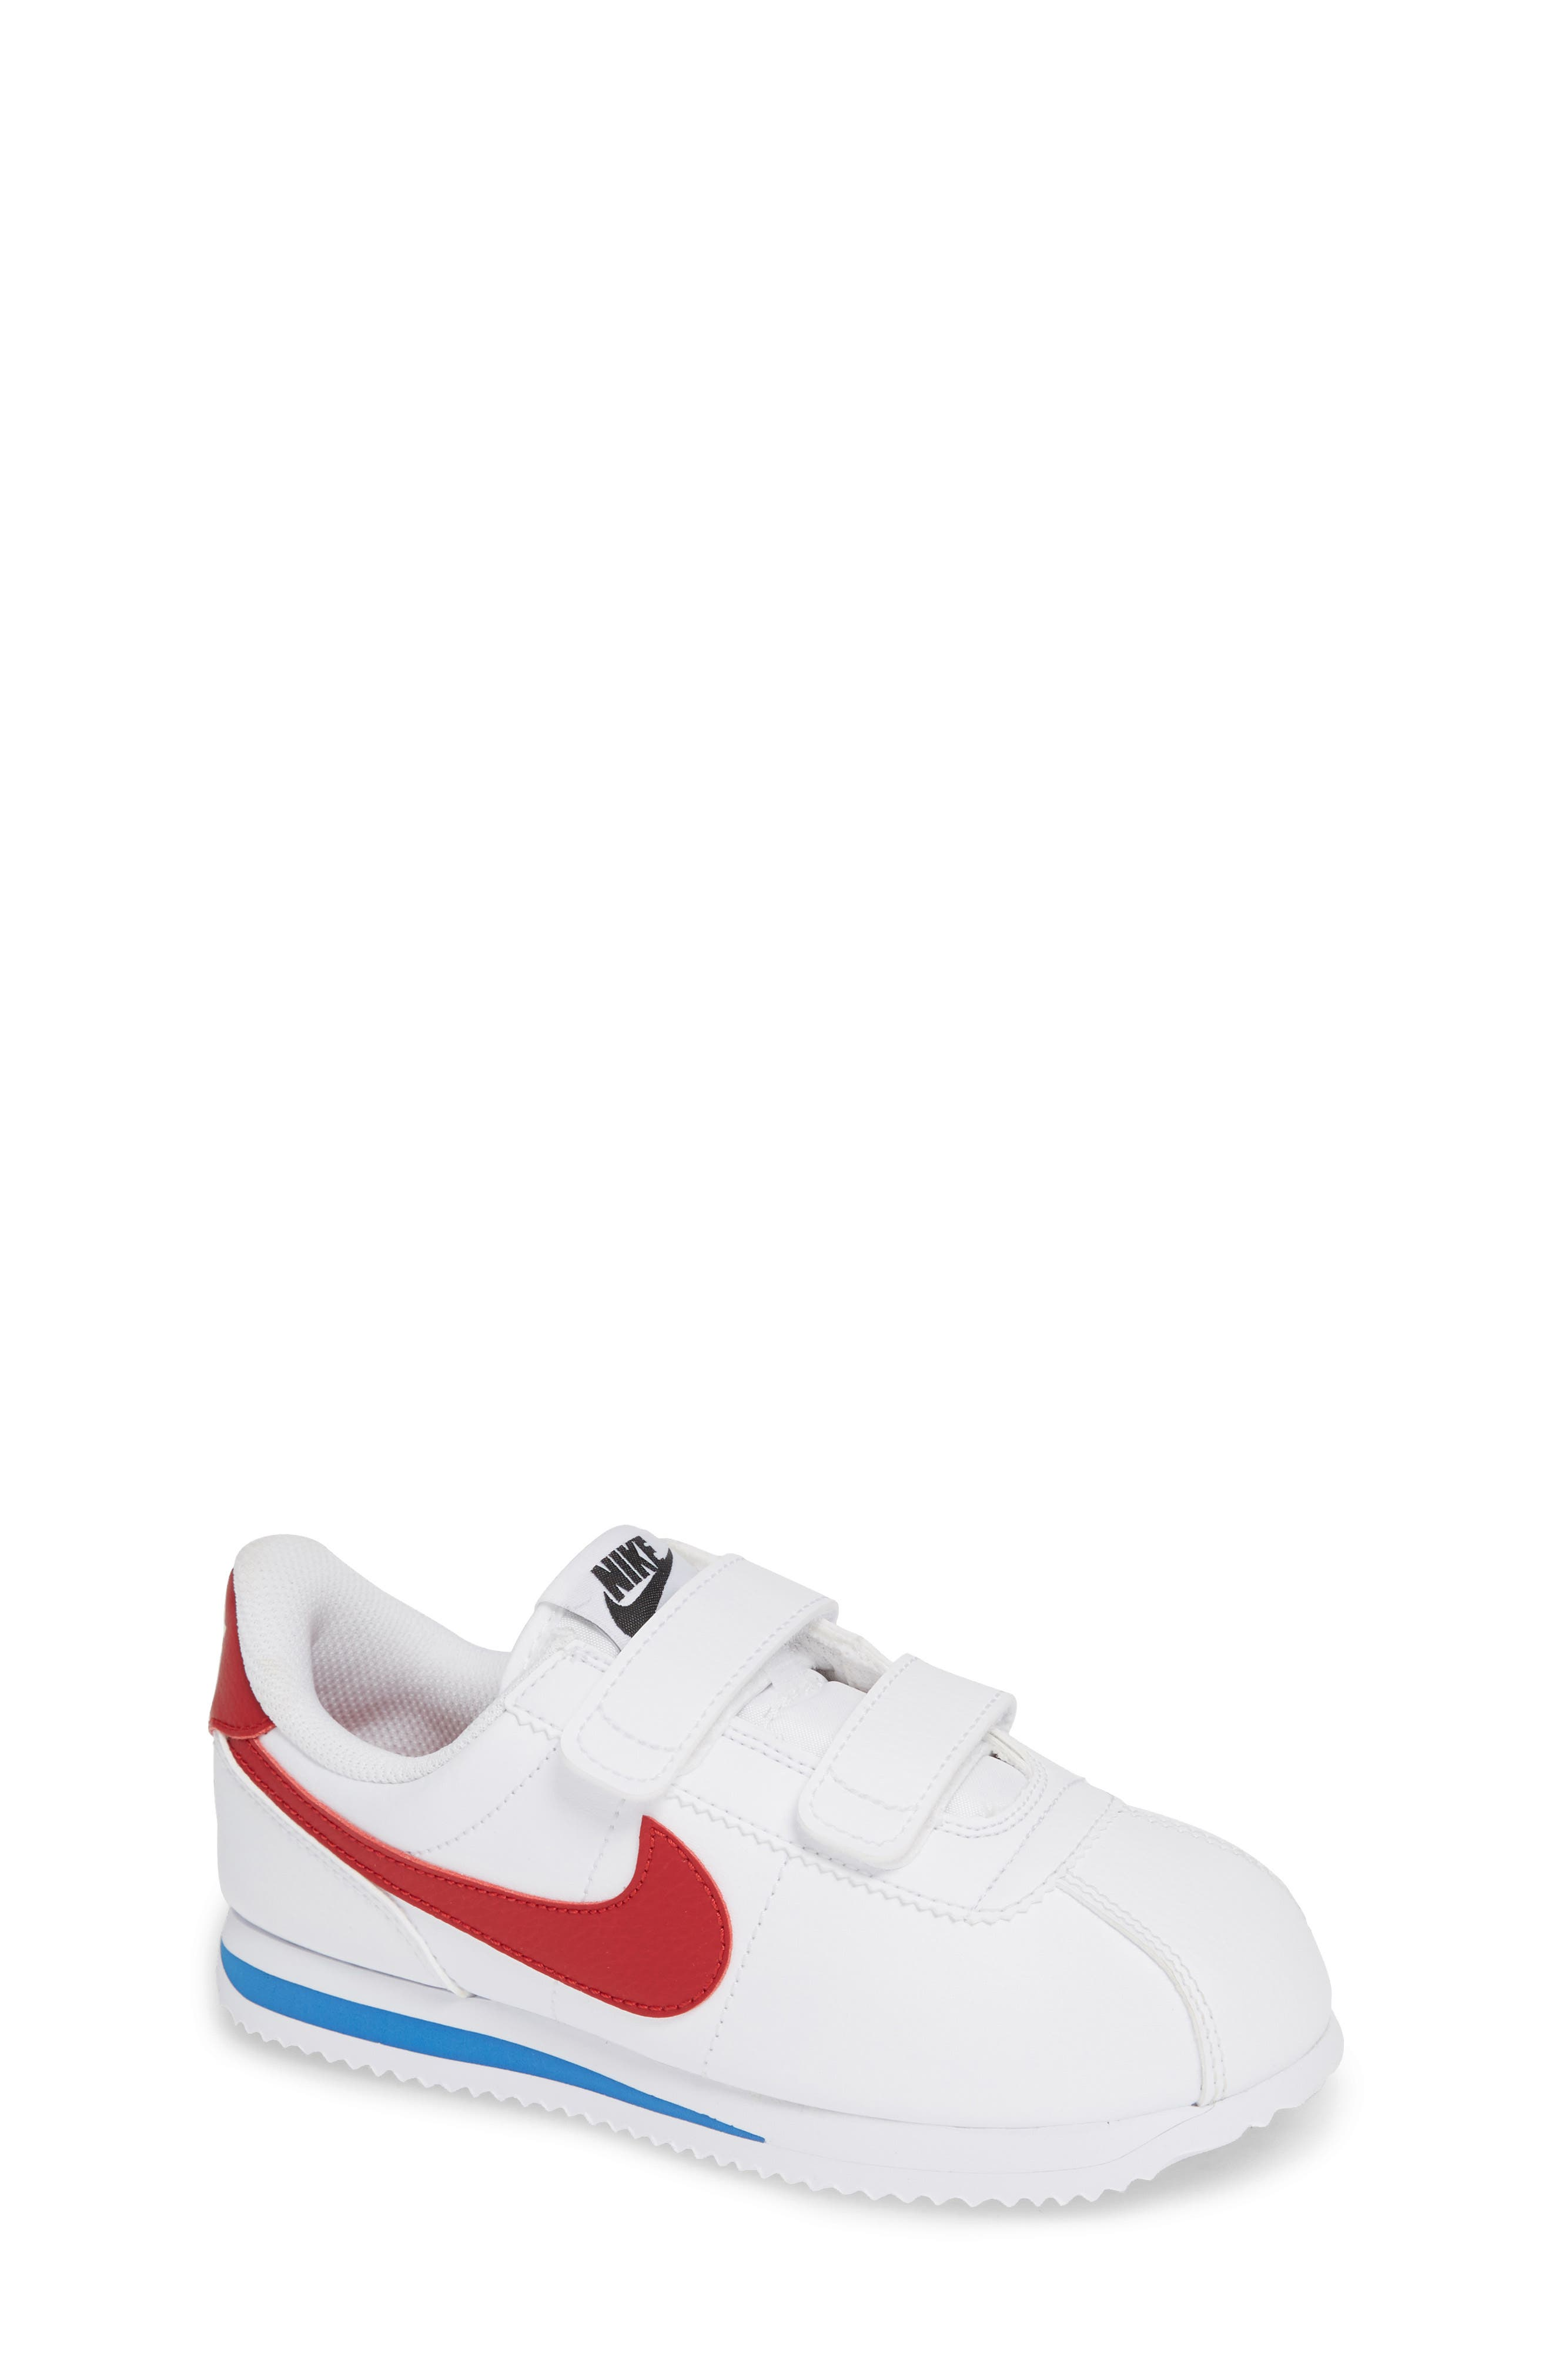 NIKE,                             Cortez Basic SL Sneaker,                             Main thumbnail 1, color,                             WHITE/ VARSITY RED/ BLACK